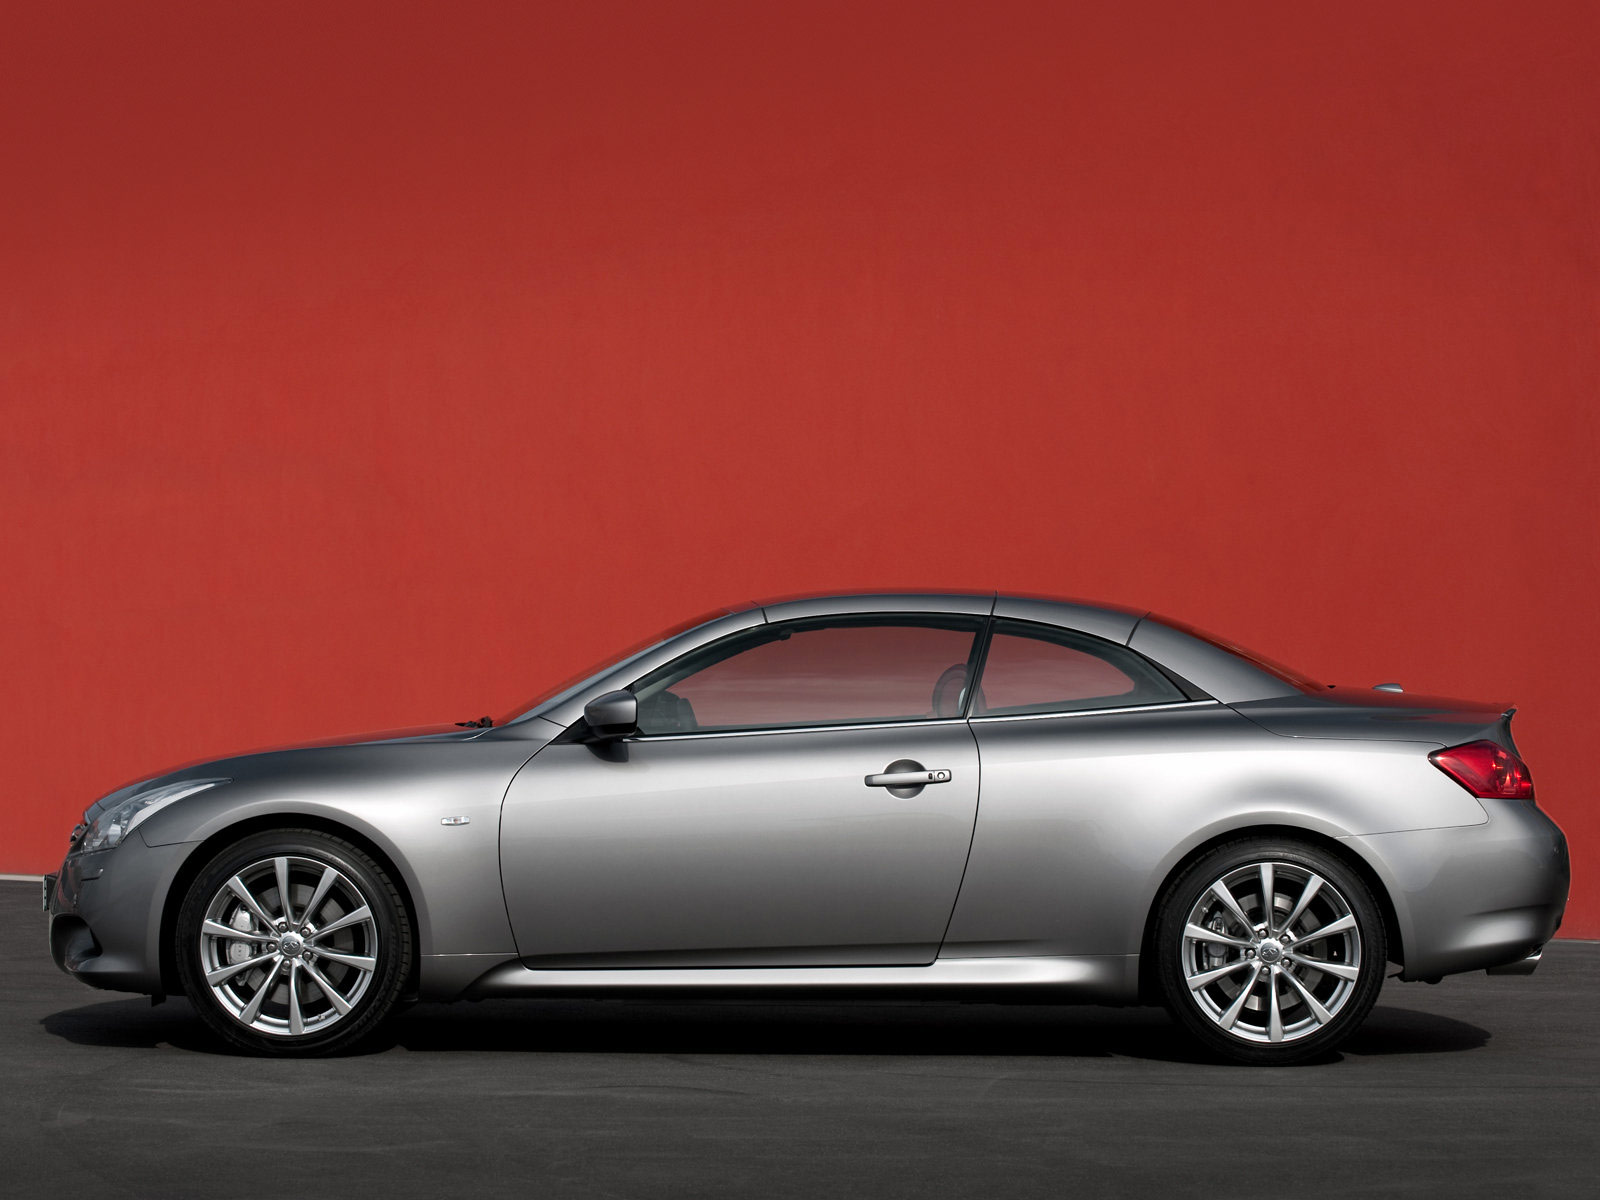 2009 infiniti g37 convertible car pictures. Black Bedroom Furniture Sets. Home Design Ideas